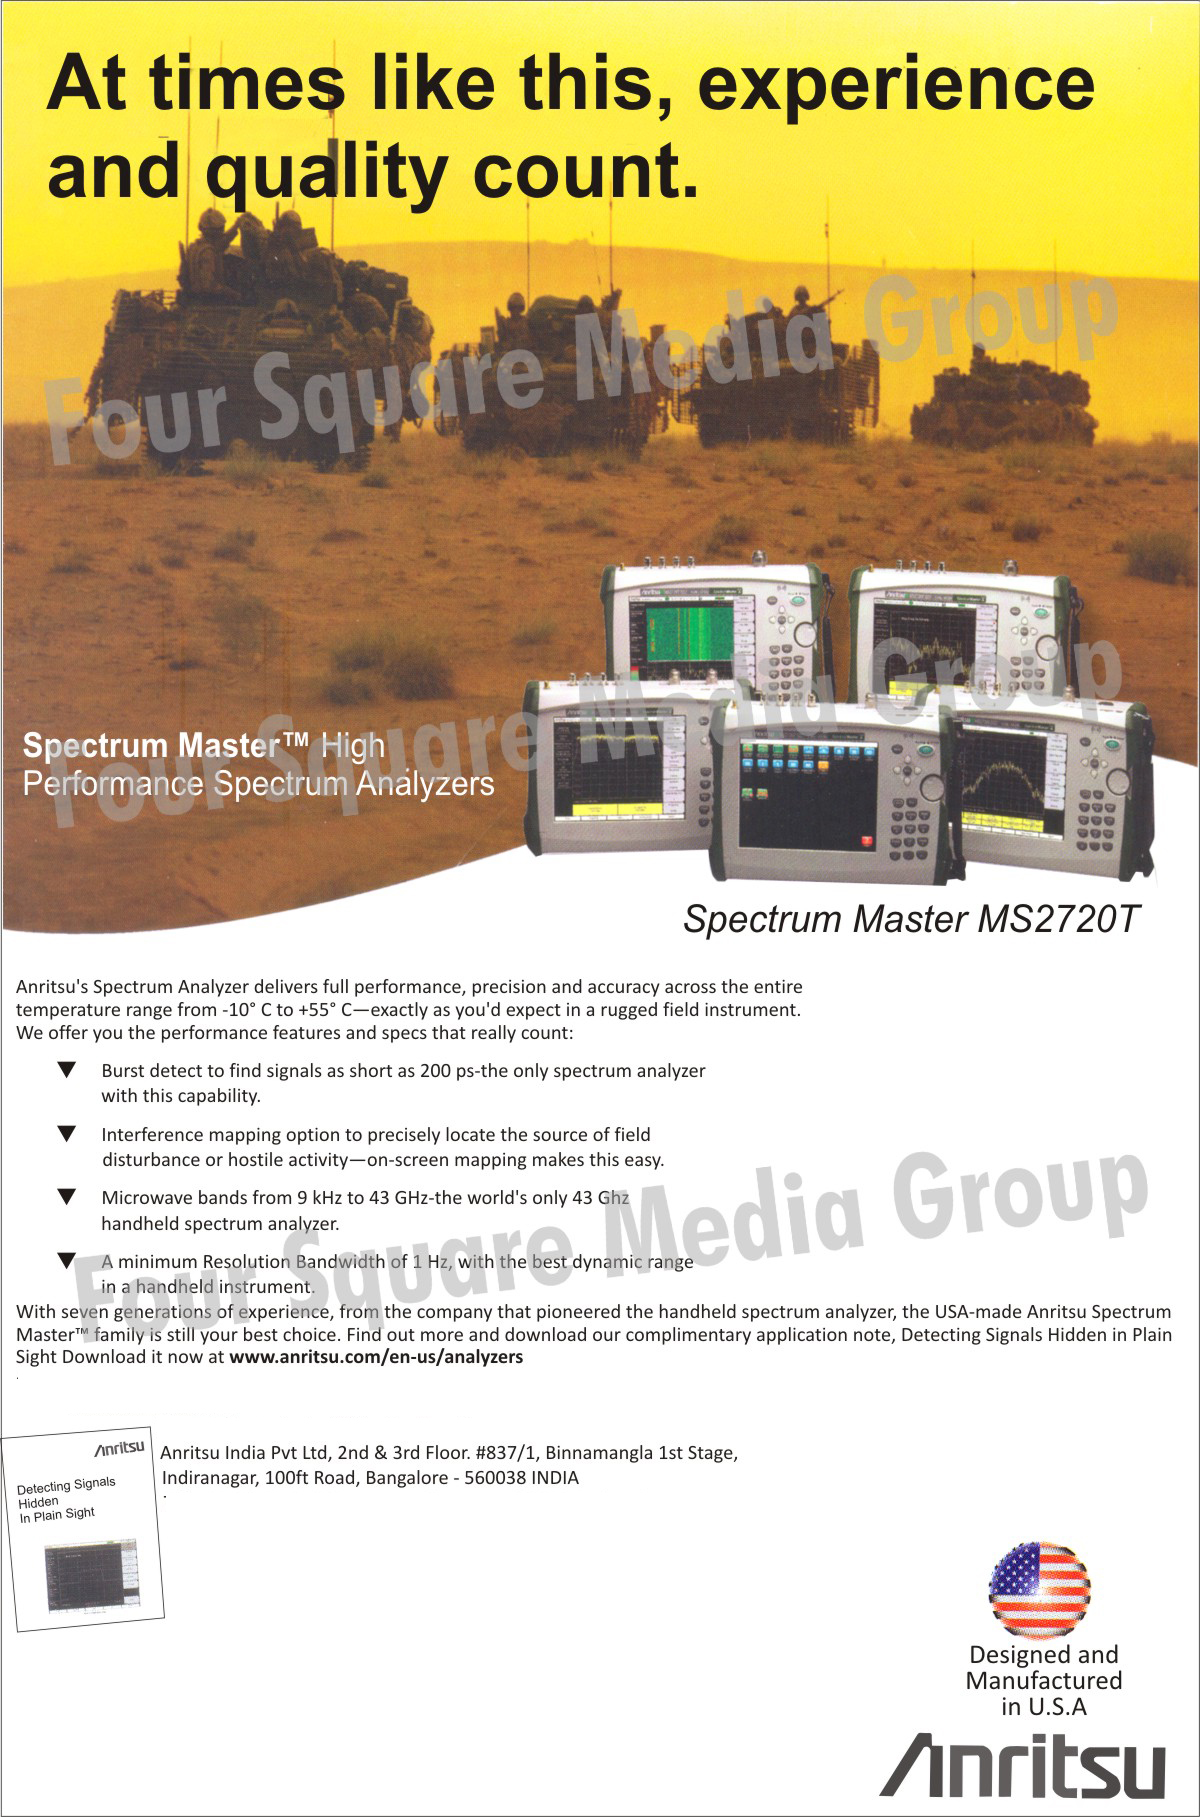 Mobile Wireless Communications, Station Analyzers, Bluetooth Instruments, Cable Analyzers, Antenna Analyzers, Interference Hunter, Power Meters, Power Sensors, Signal Generators, Optical Devices, Power Meters, Vector Network Analyzers, Digital Broadcast Analyzer, Transport Datacom,